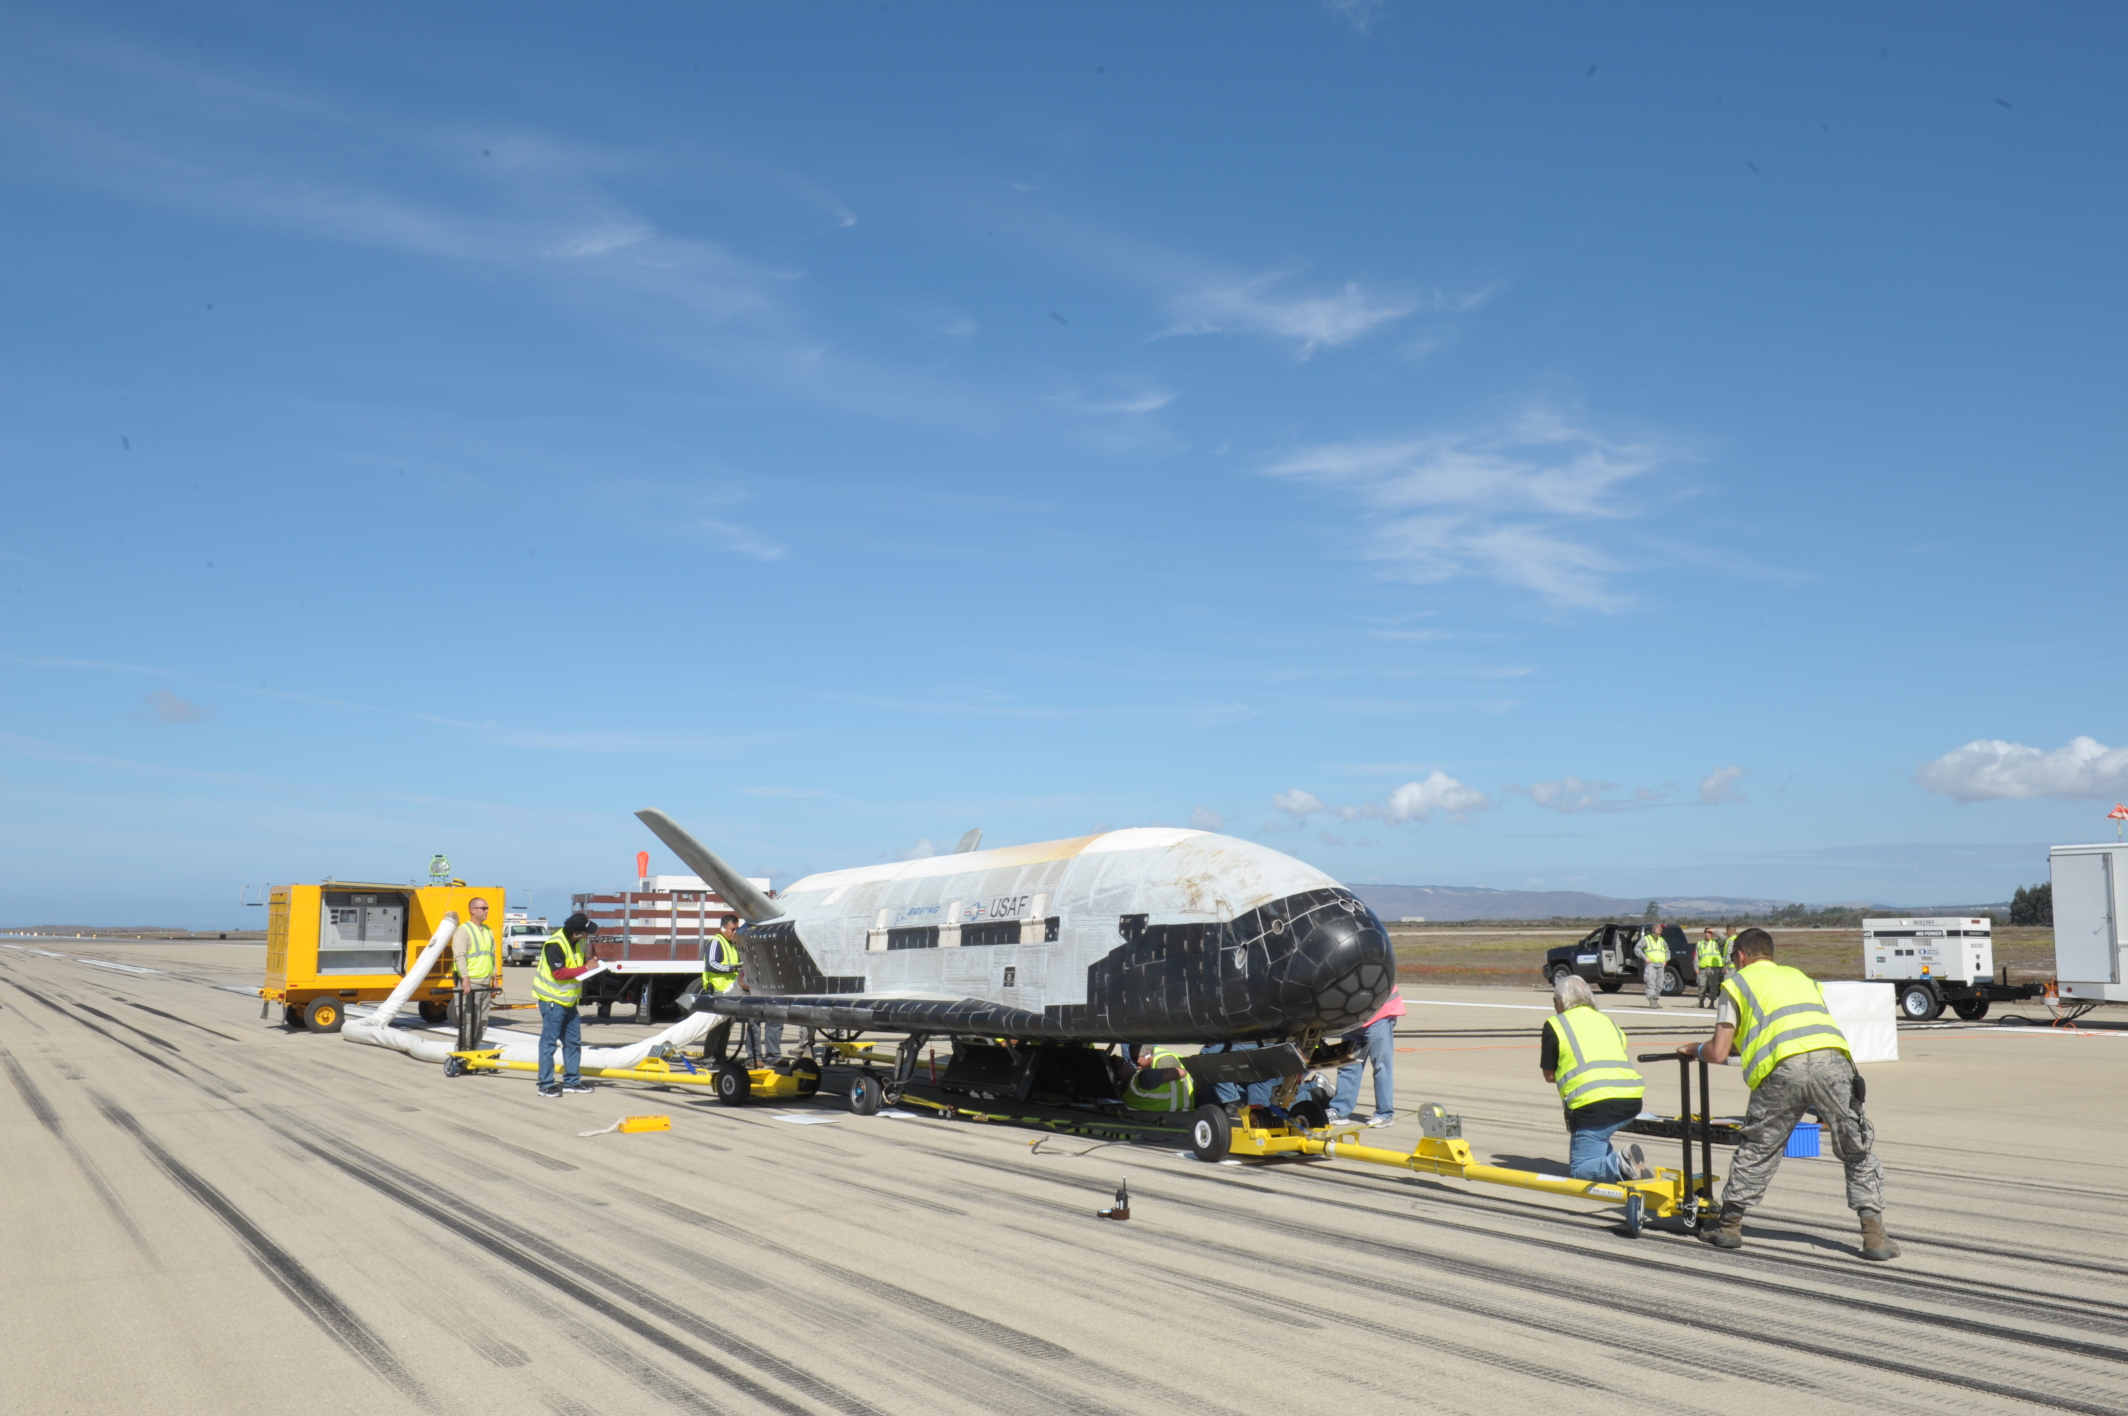 X-37B Space Plane at Vandenberg: OTV-3